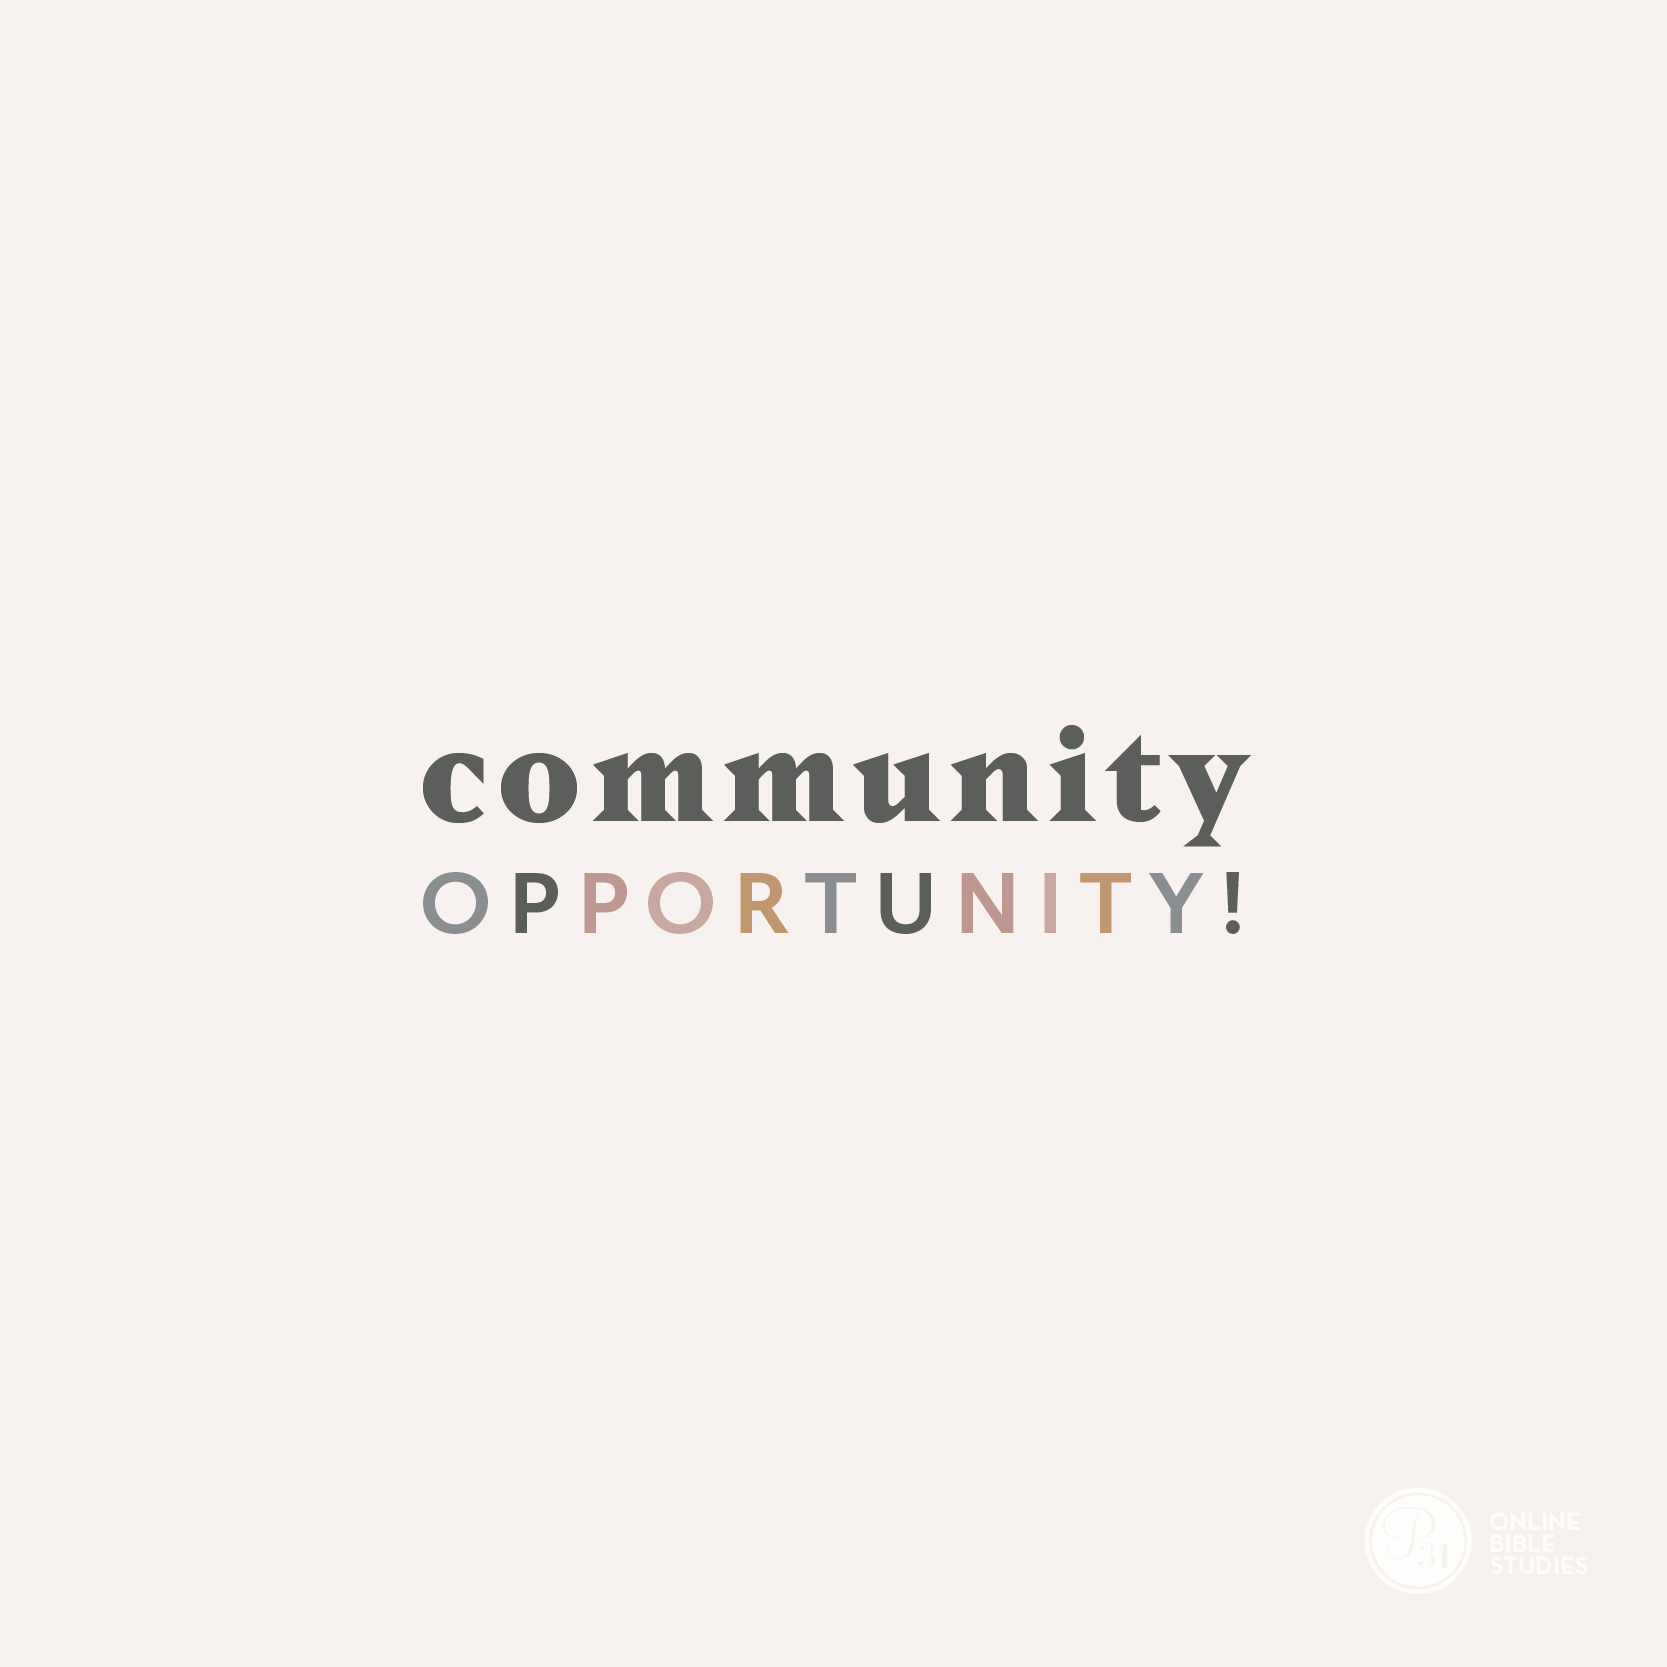 """Community Opportunity""  #TrustworthyStudy 